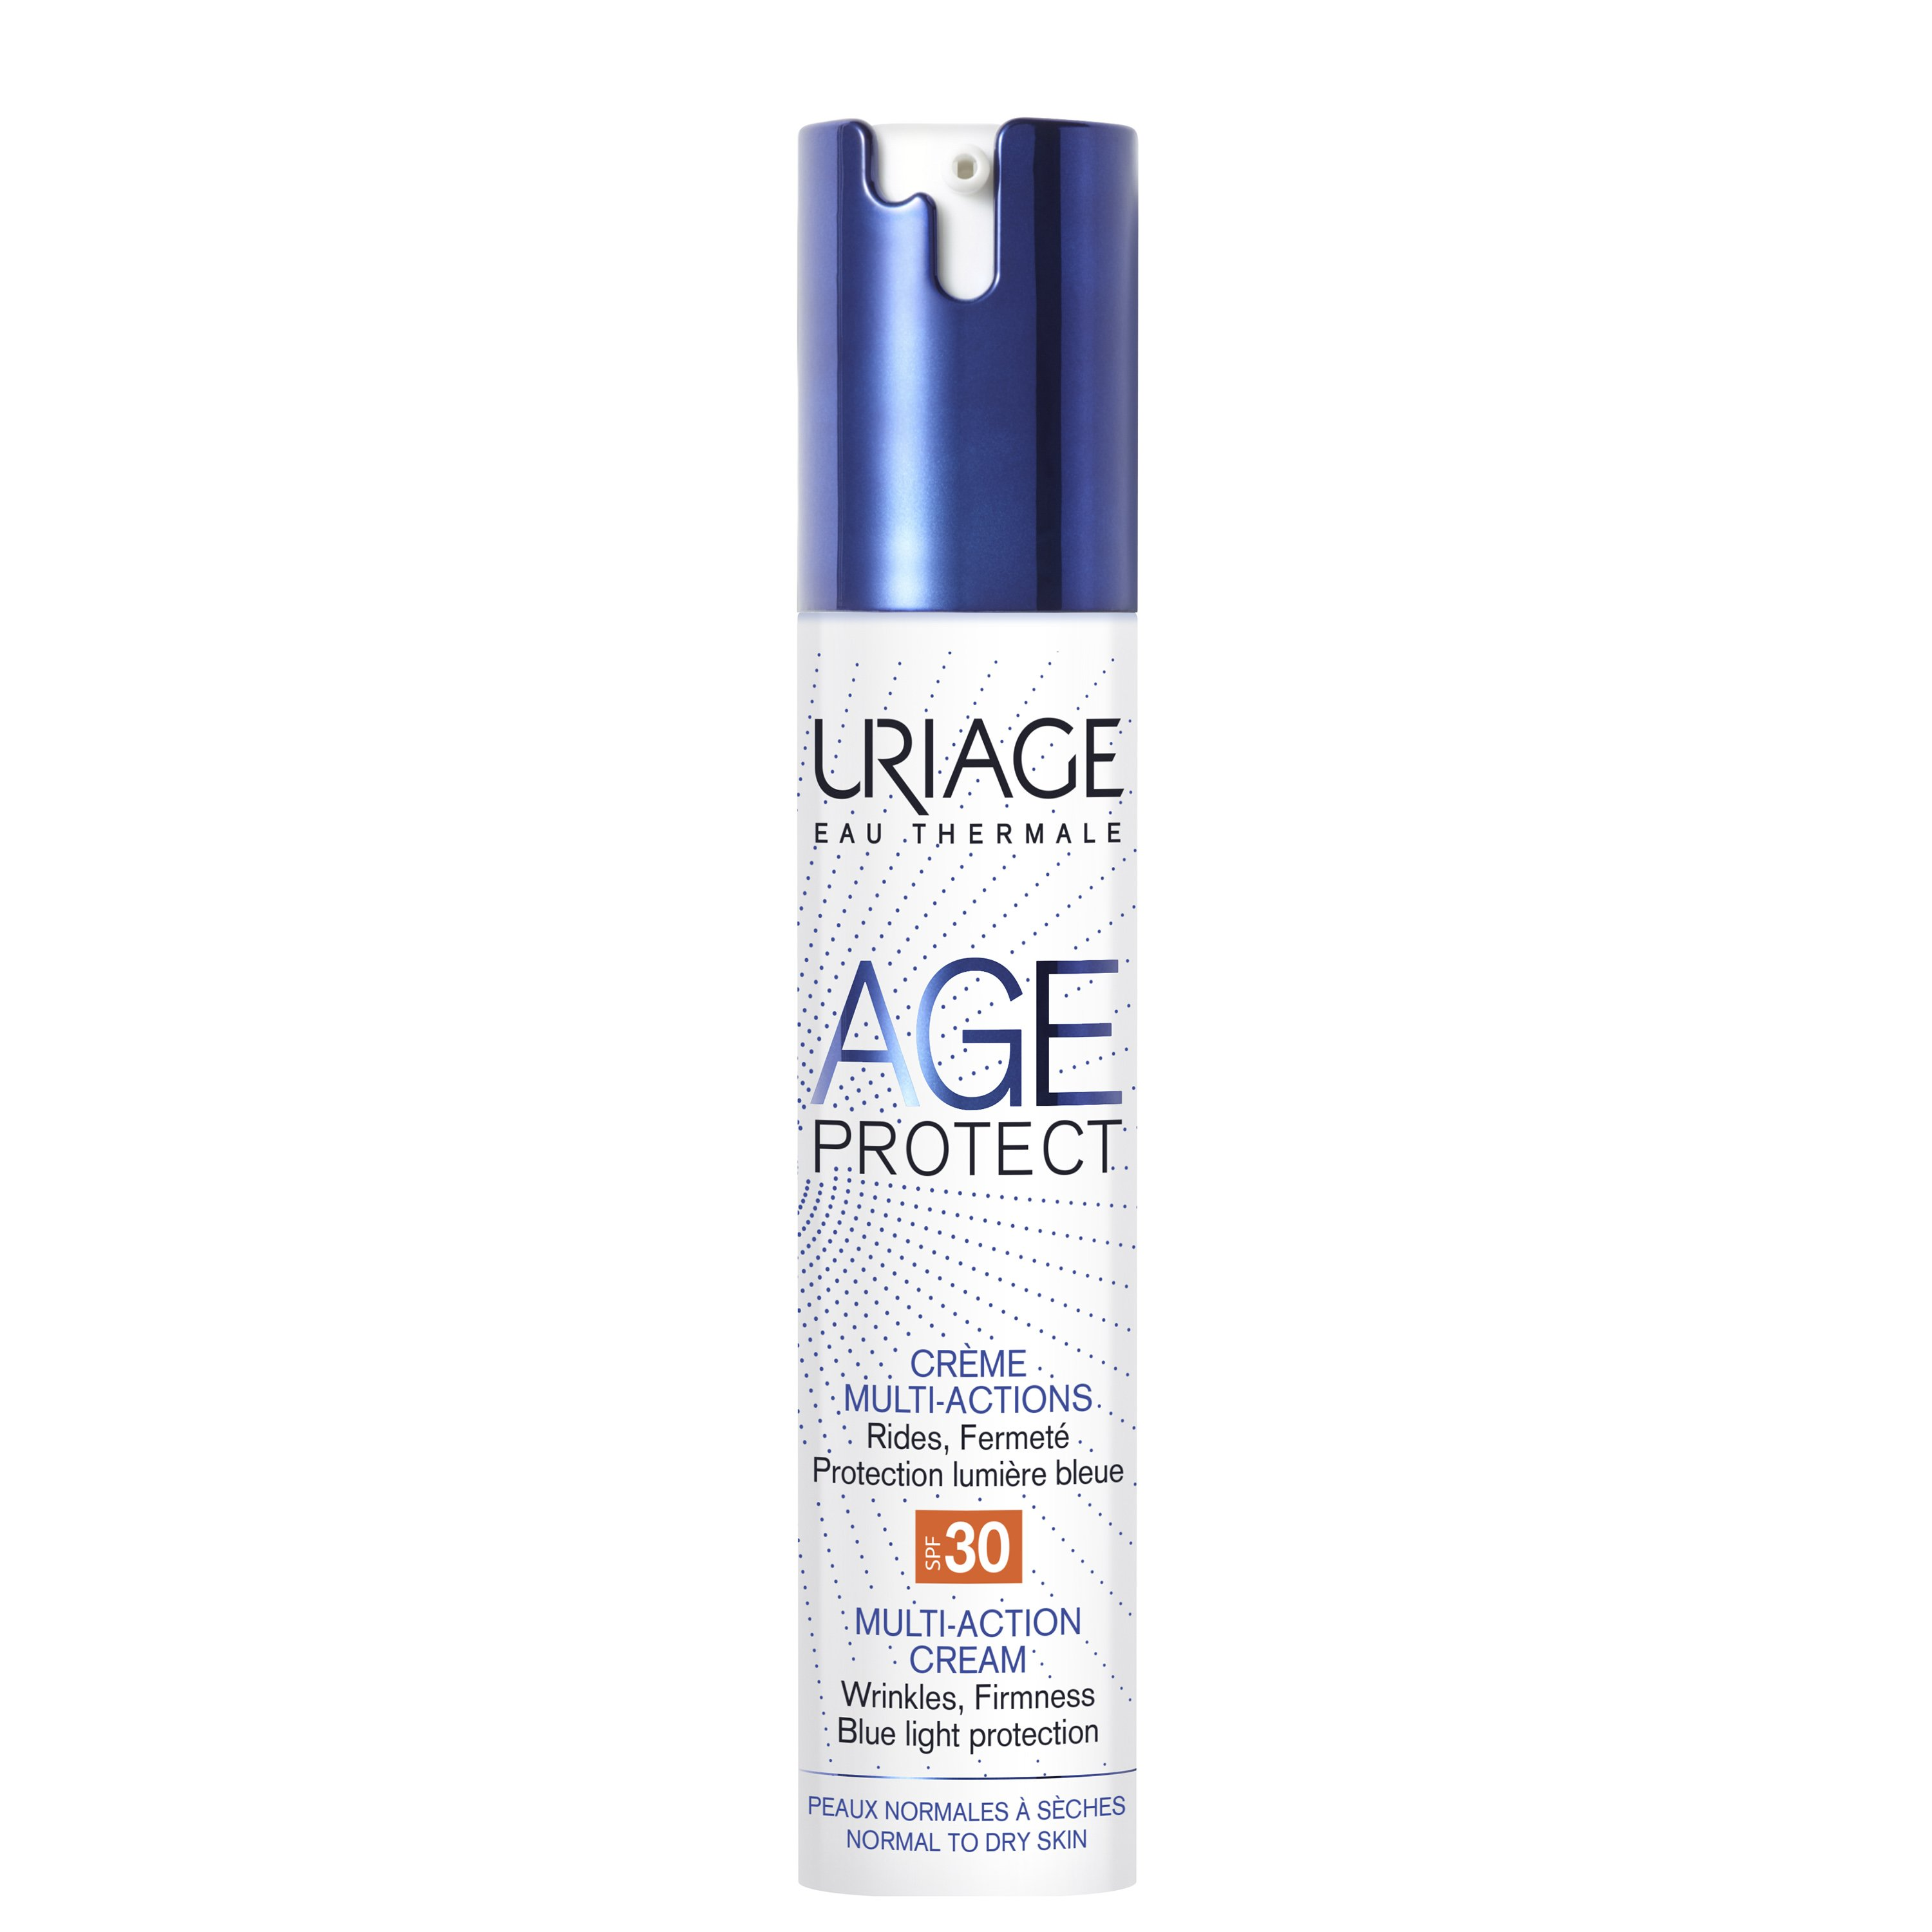 Uriage Eau Thermale Age Protect Multi-Action Cream Spf30 Αντιγηραντική Κρέμα για Κανονικές Προς Ξηρές Επιδερμίδες 40ml